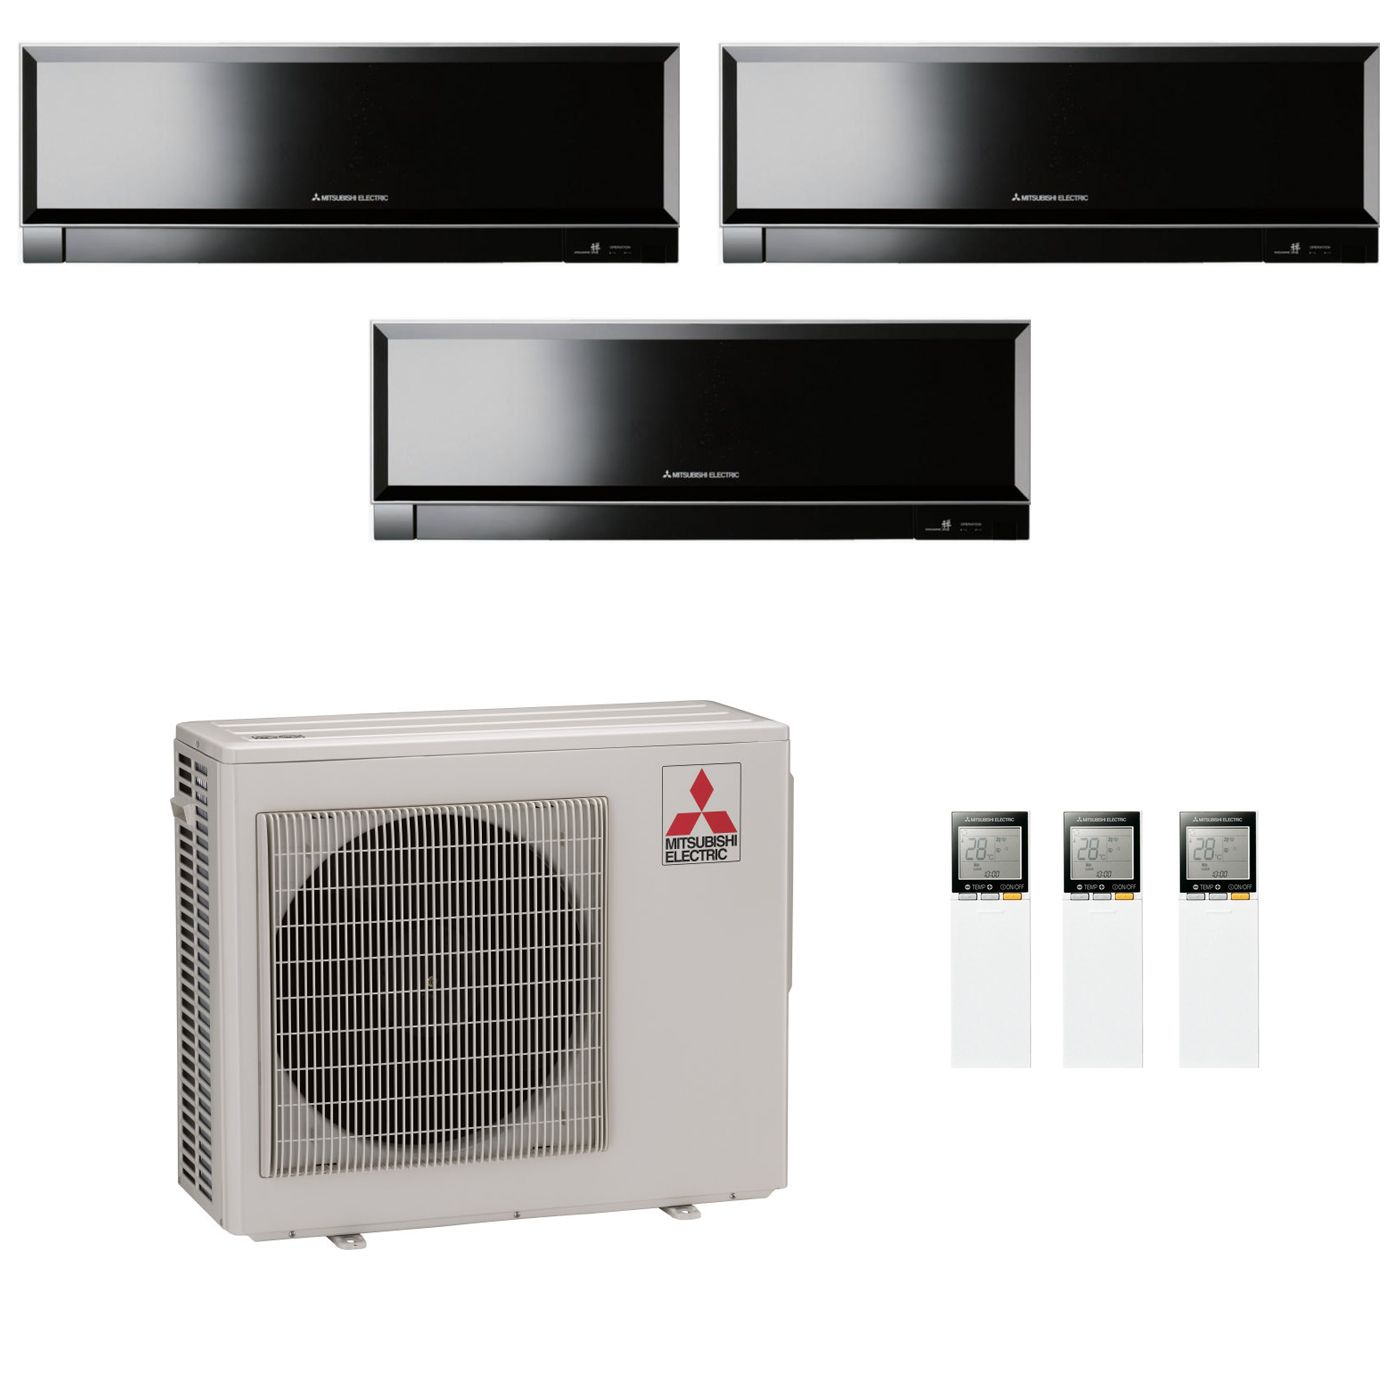 mxz pump heat two zone with mitsubishi units ductless mr residential more air systems btu indoor views multi slim conditioners